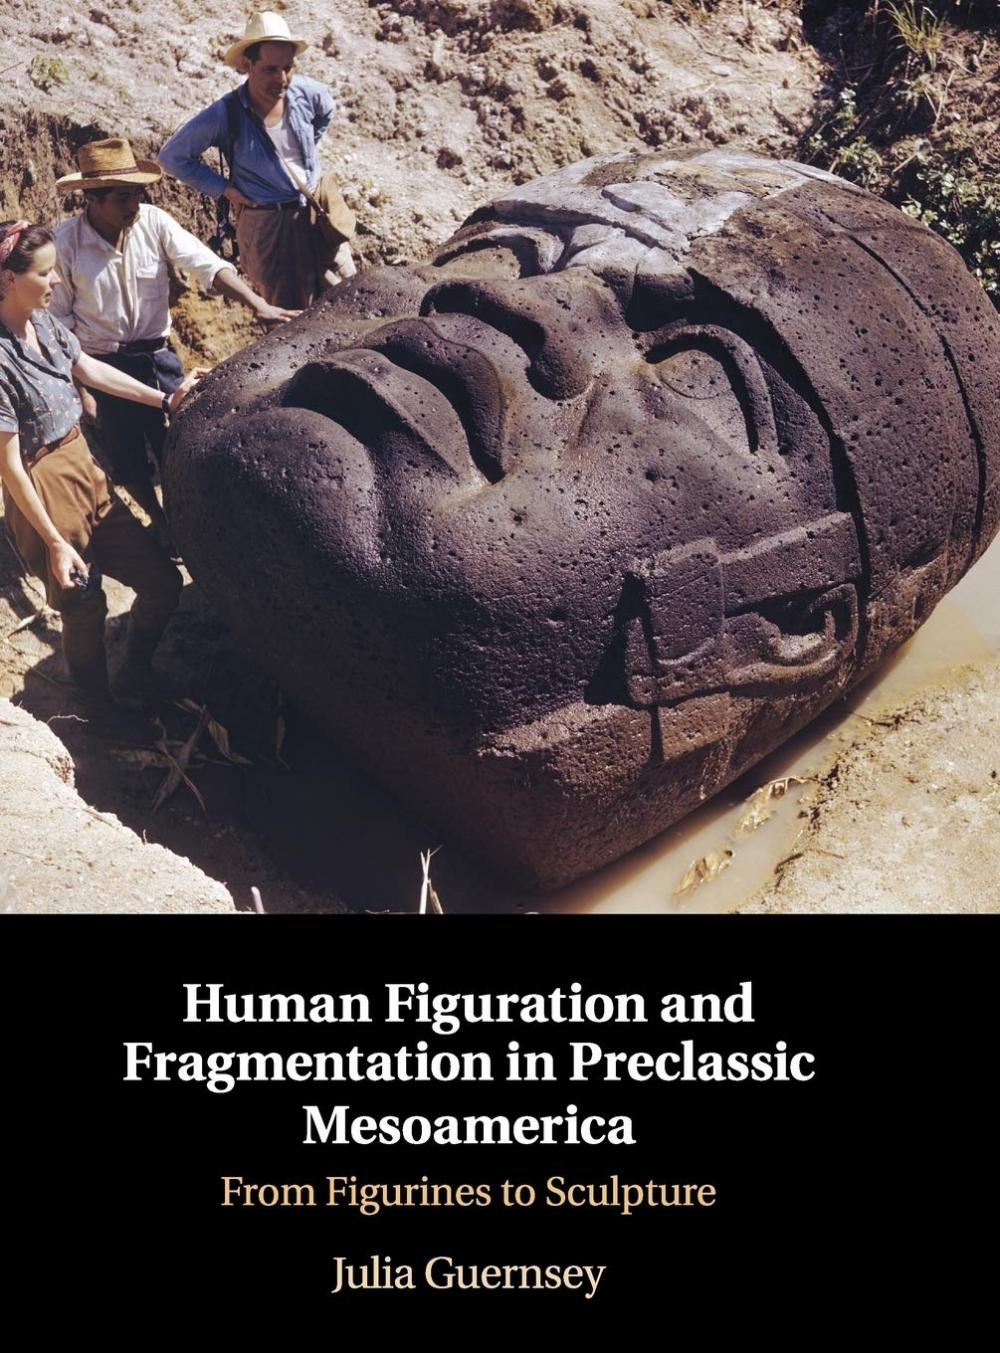 Human Figuration and Fragmentation in Preclassic Mesoamerica a new book from University of Texas at Austin Art History Professor and latest inductee into the Academy of Distinguished Teachers Julia Guernsey